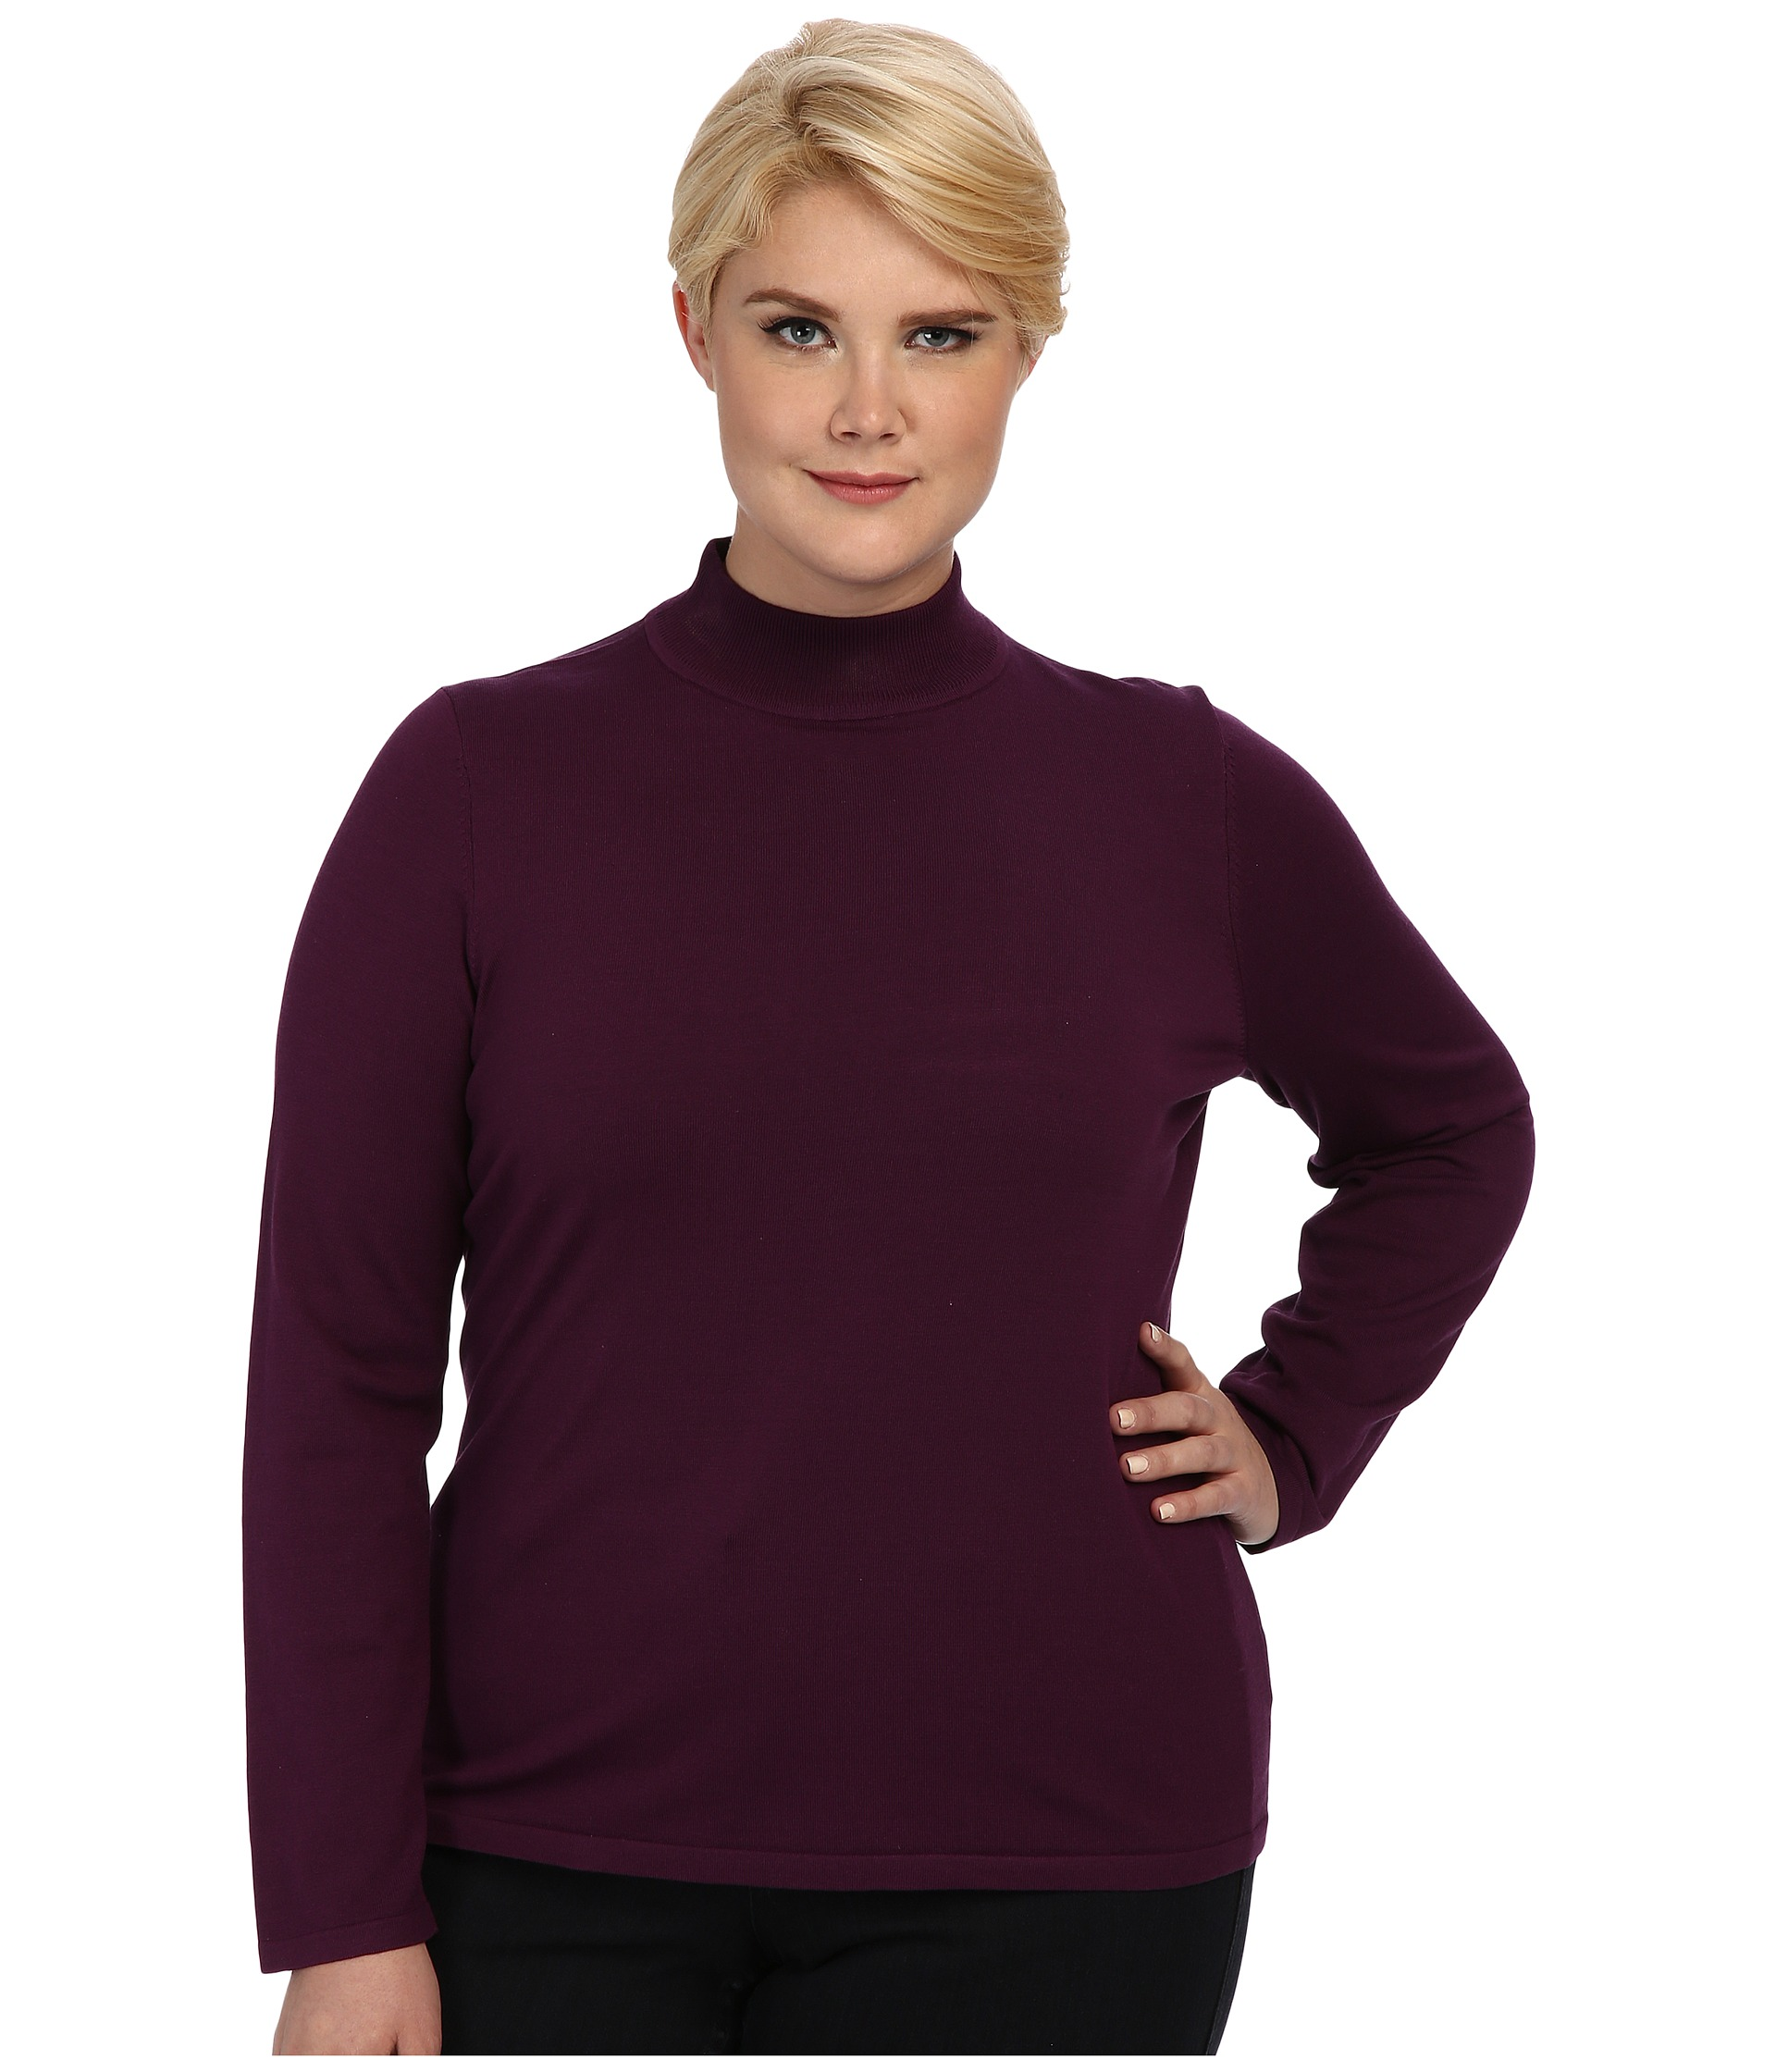 Free Shipping with $50 purchase. Explore details, ratings and reviews for our women's turtleneck shirts at theotherqi.cf Our high quality women's shirts are expertly designed and made for .